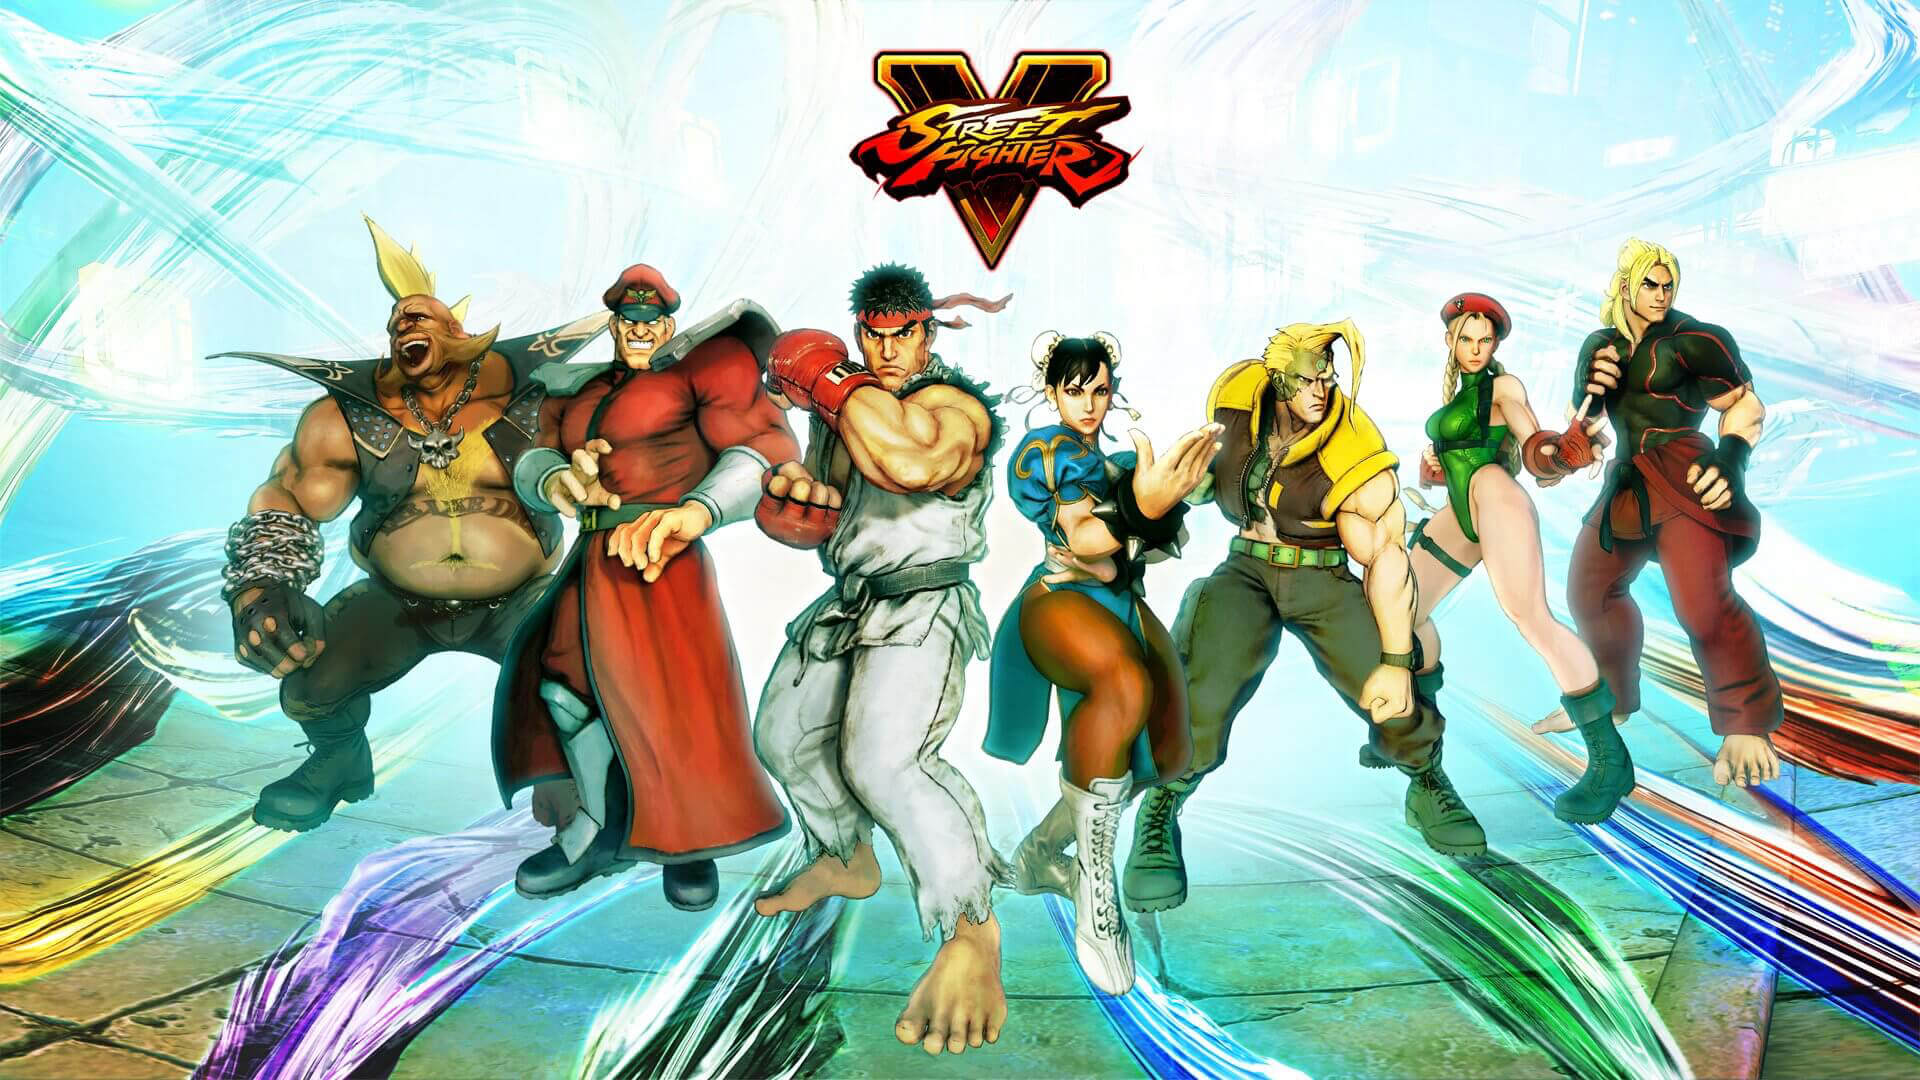 Rumors: Who can be the 5th new fighter in Street Fighter 5 ?